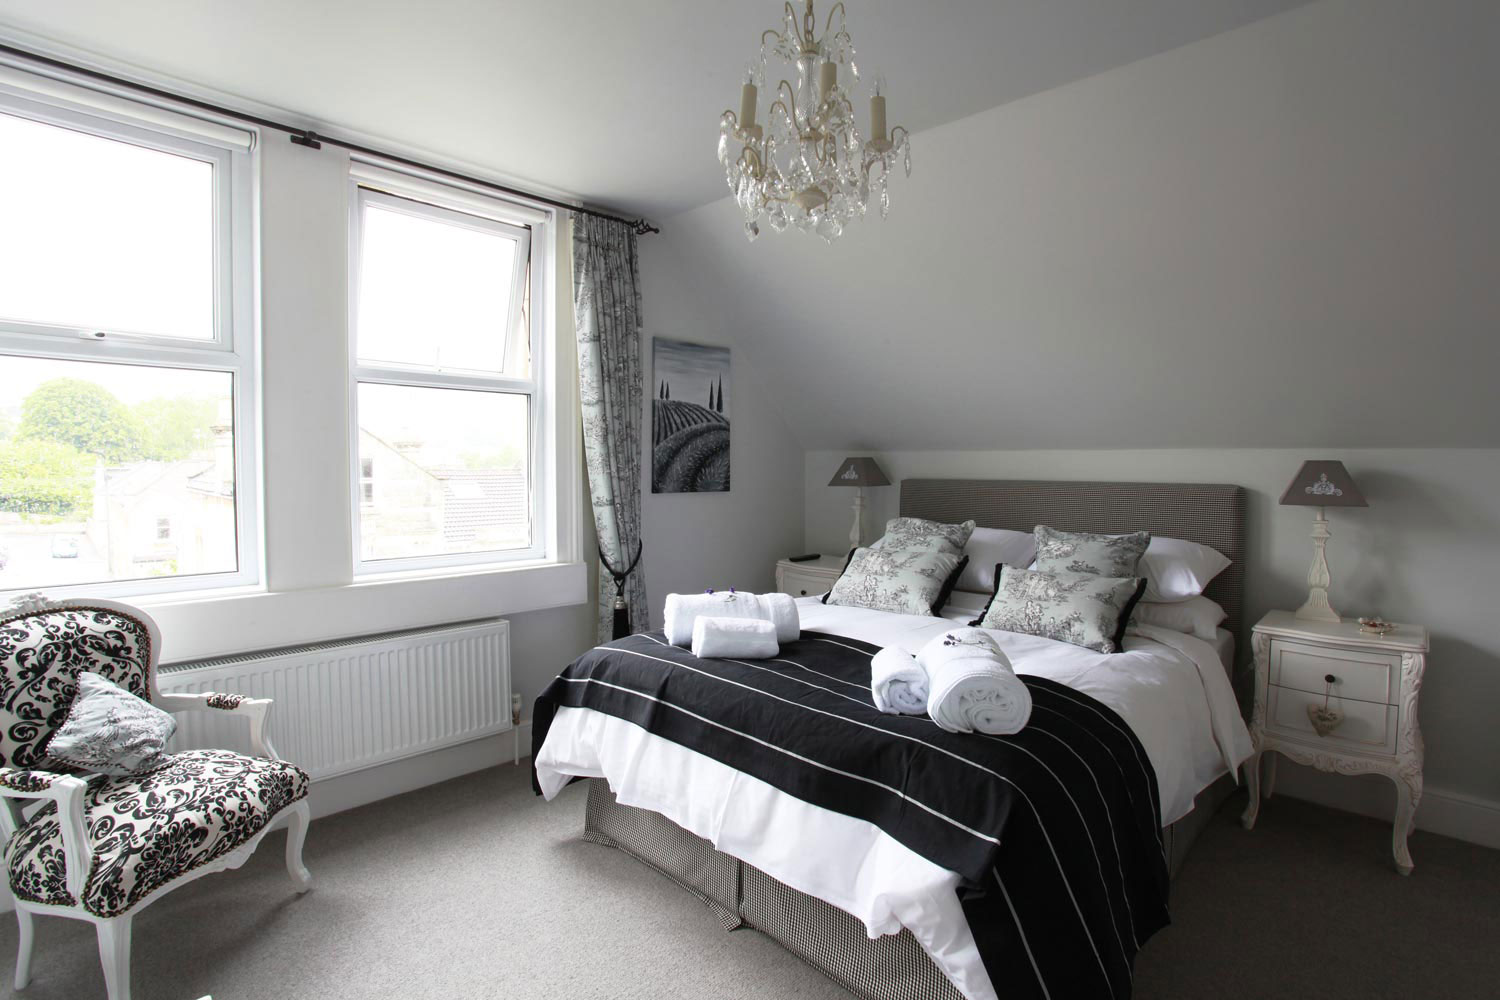 Black and white bedroom at Brindleys Luxury B&B in Bath